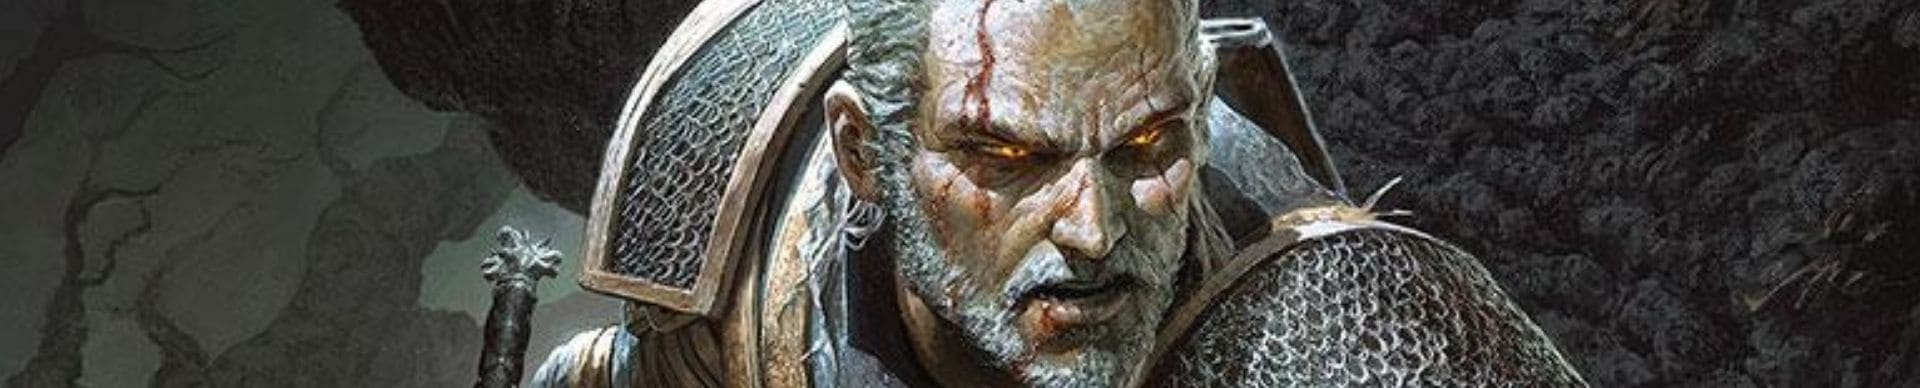 The Witcher - Das Pen and Paper Rollenspiel